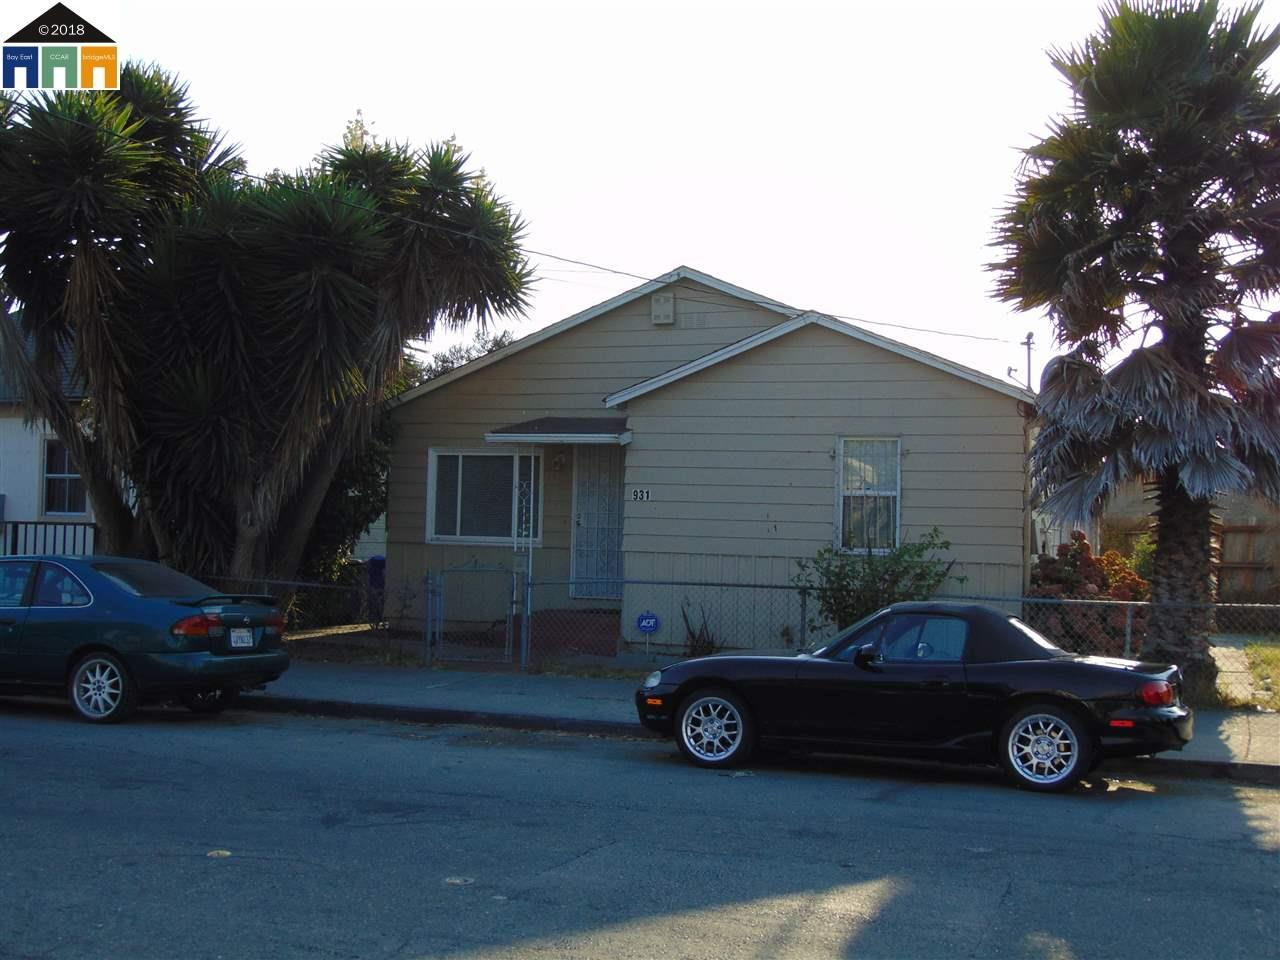 931 7TH STREET, RICHMOND, CA 94801